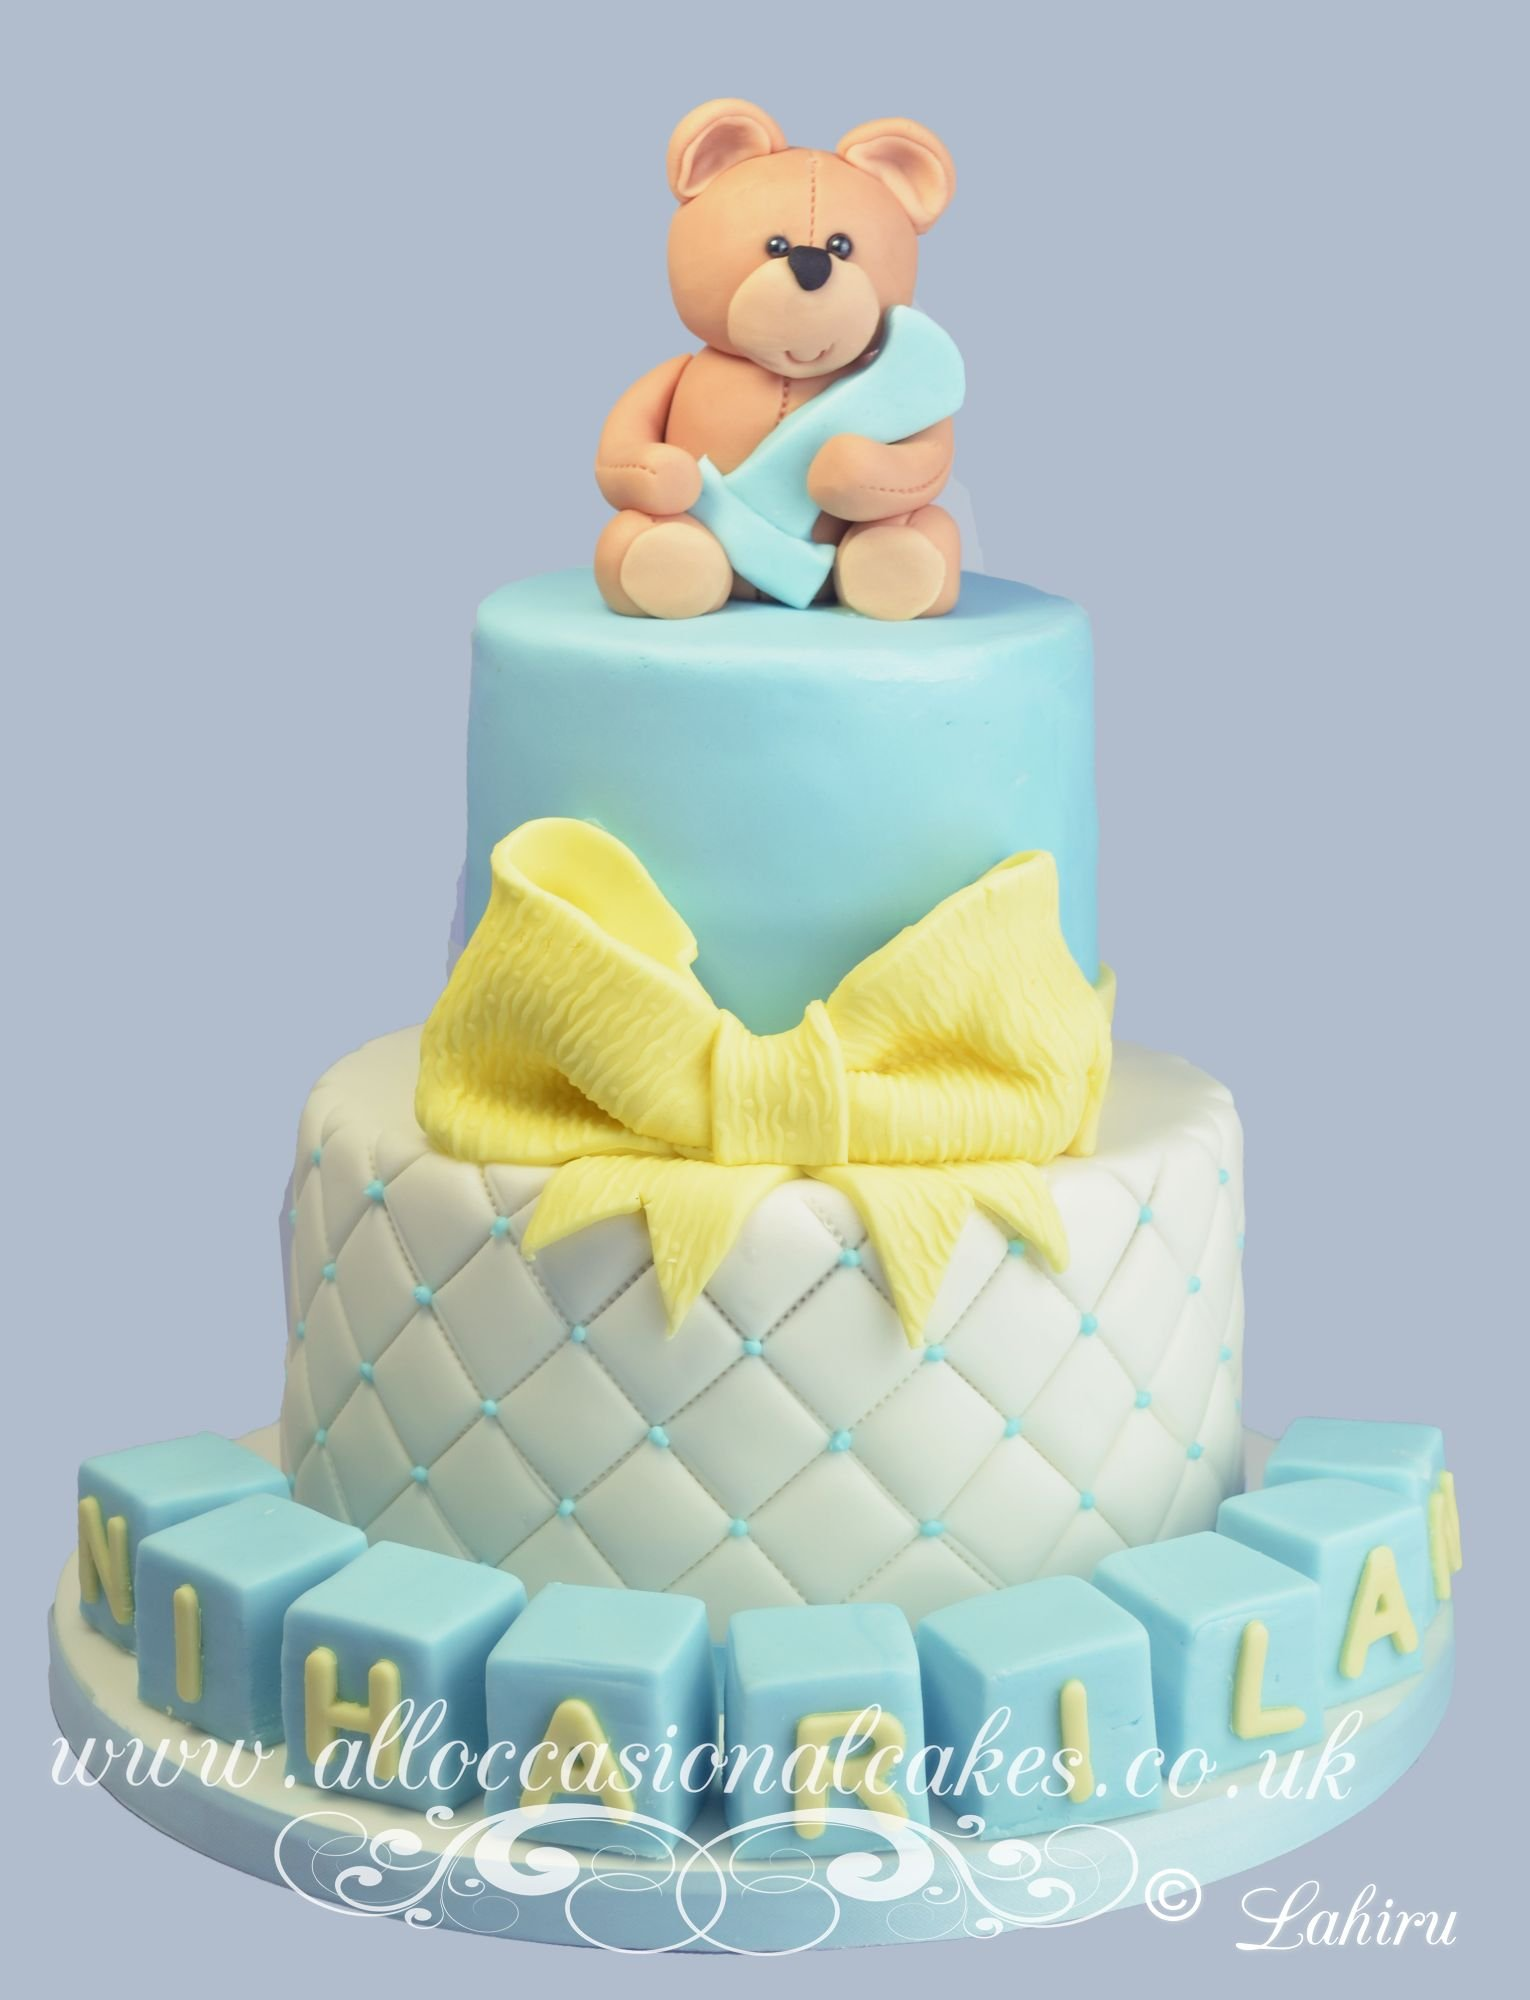 Stupendous Designer Wedding Cakes Best Birthday Cakes Other Celebration Personalised Birthday Cards Veneteletsinfo